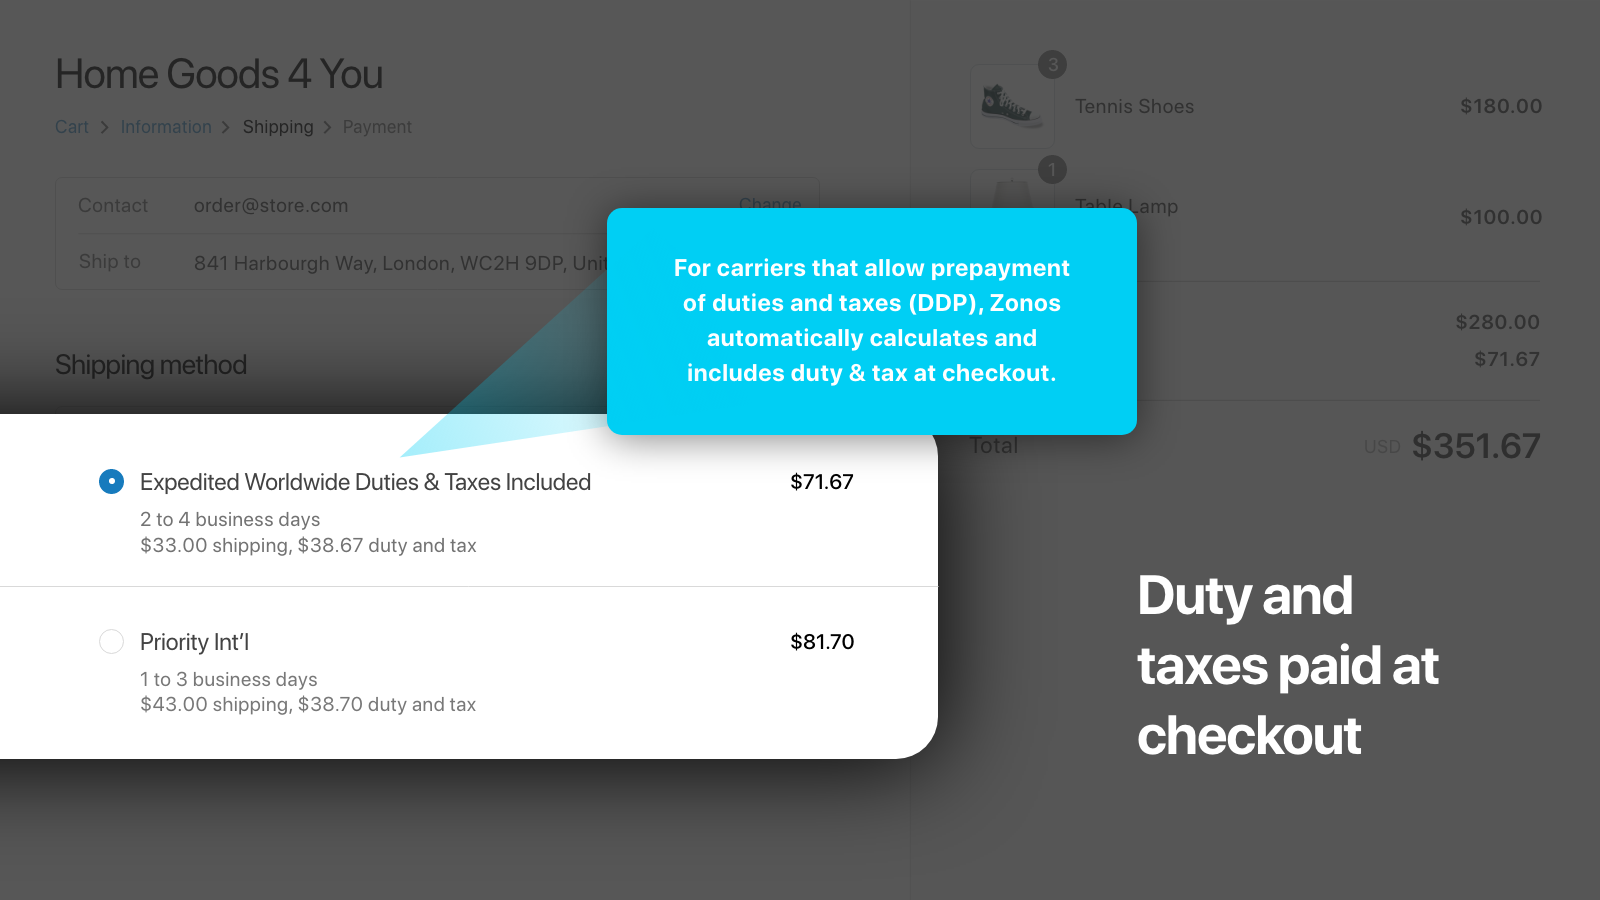 Duties and taxes paid at checkout